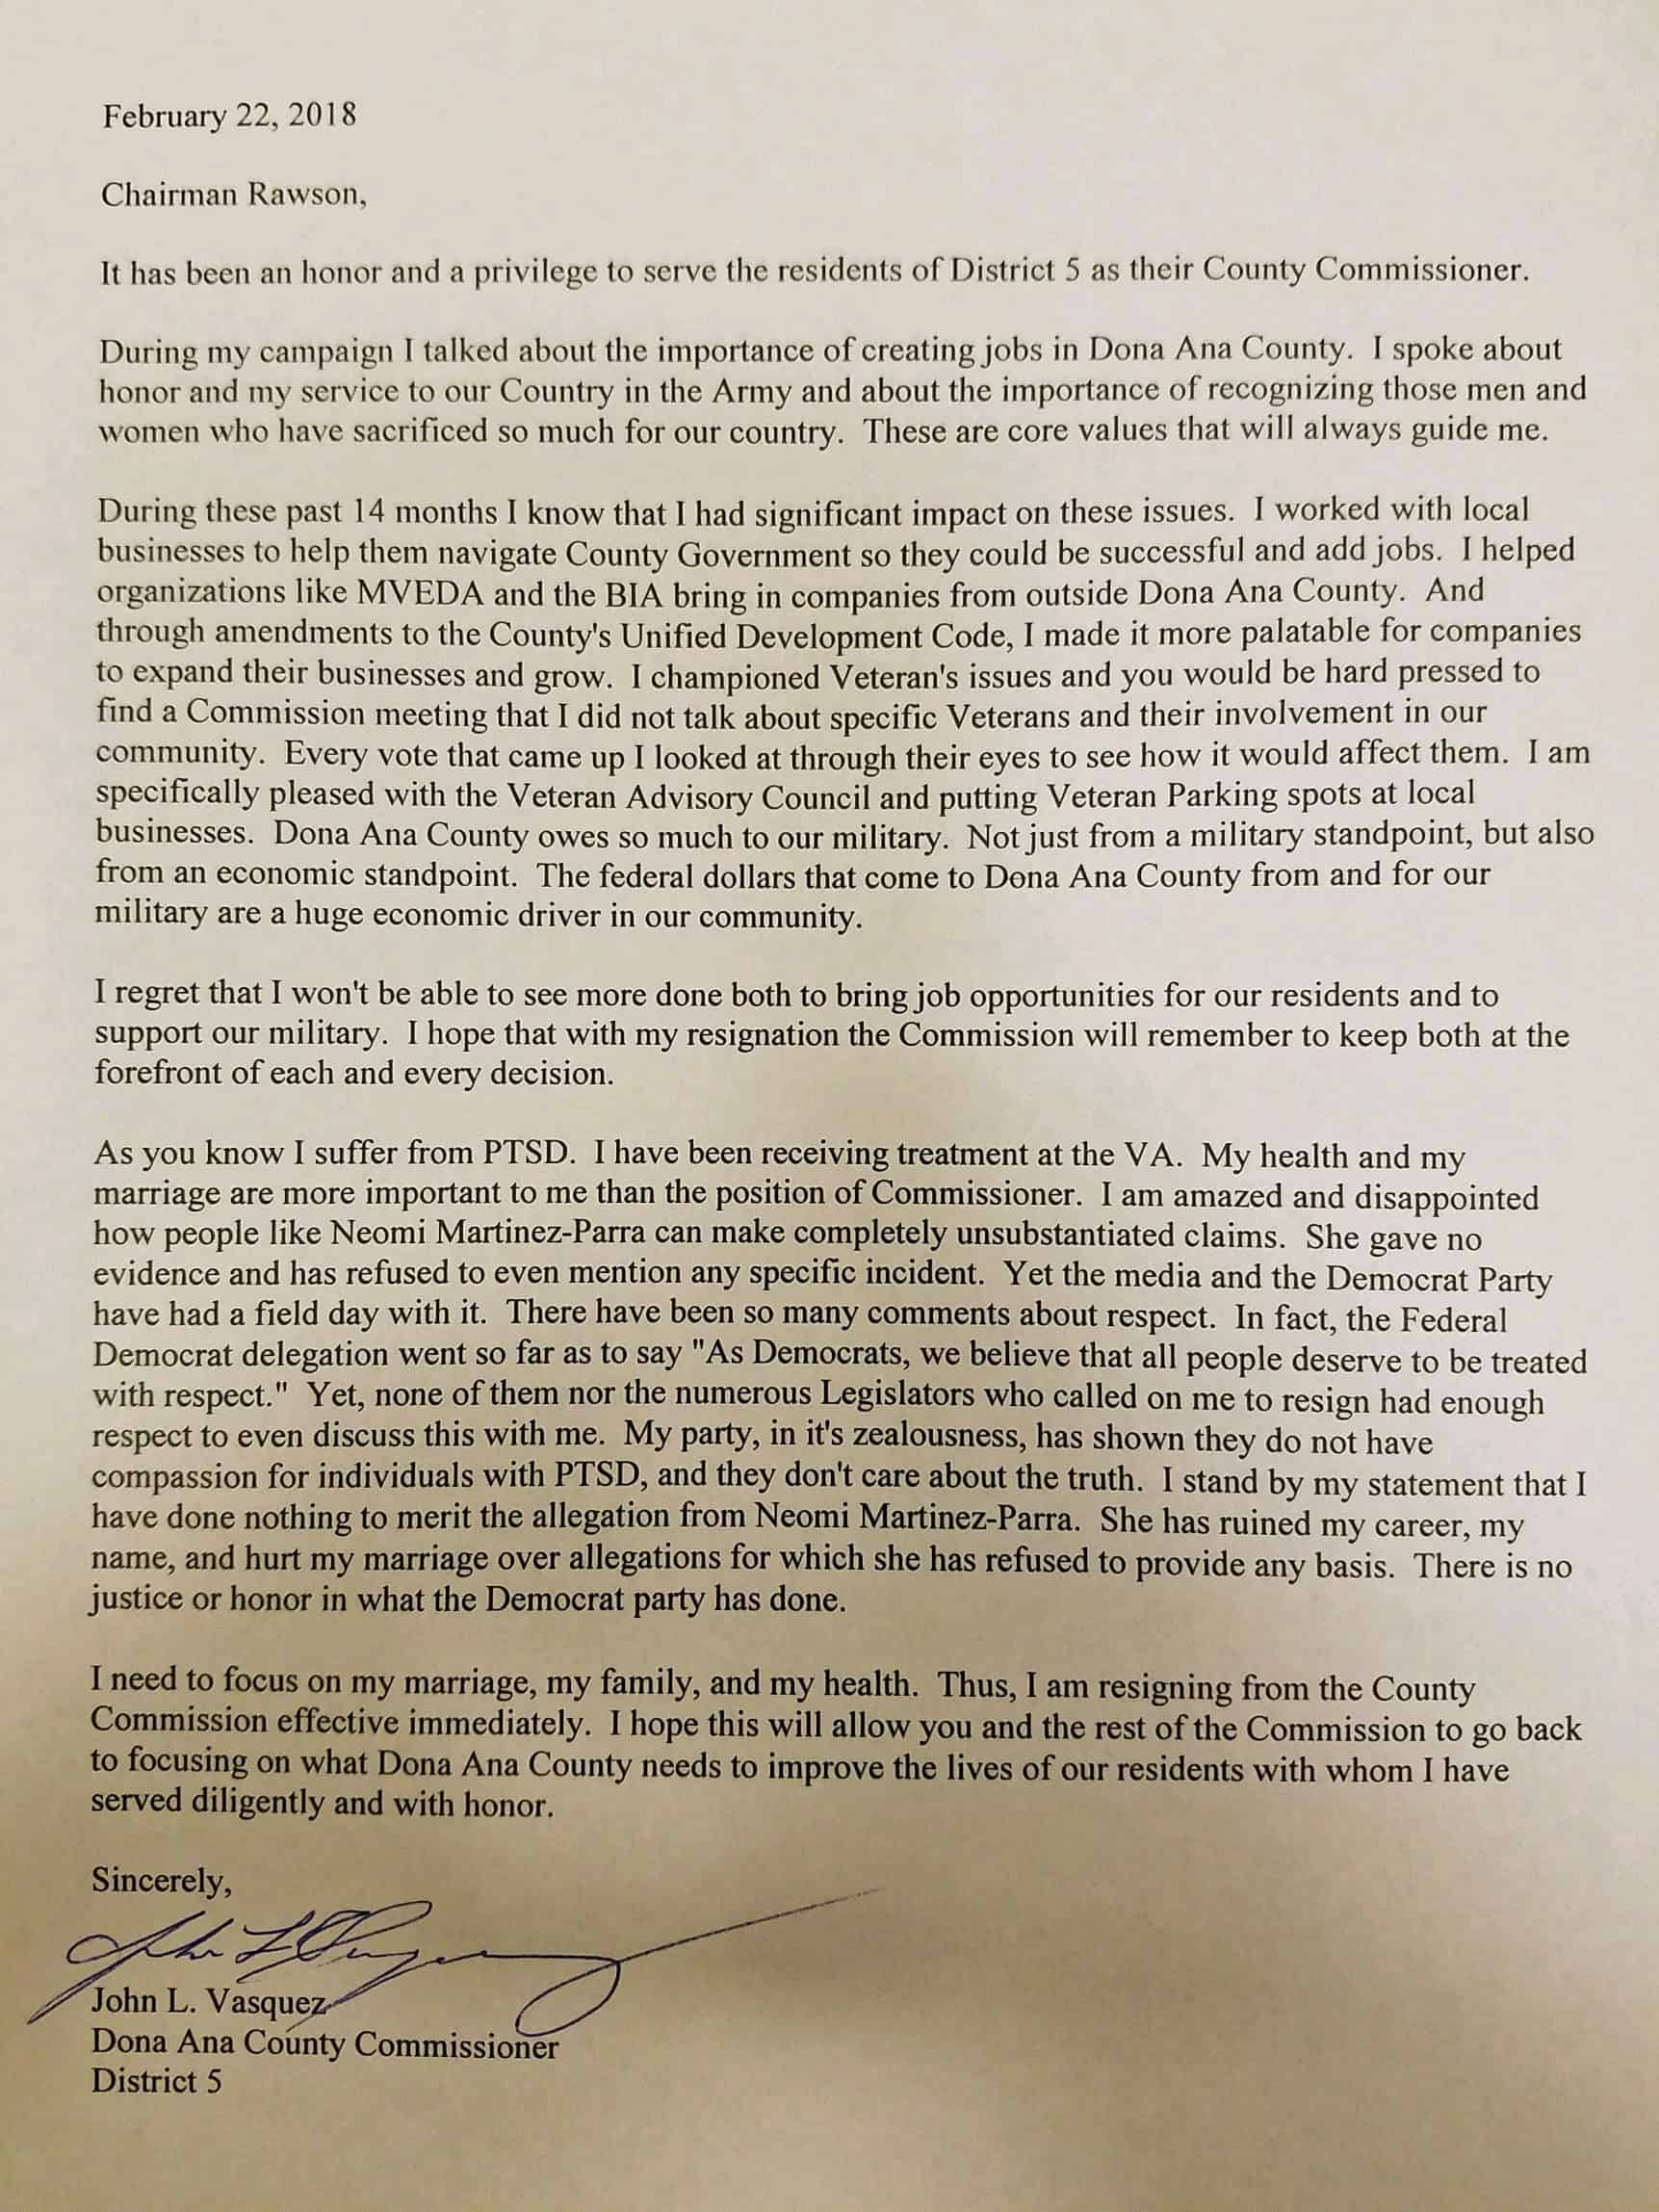 Read Vasquezu0027s resignation letter Embattled Vasquez